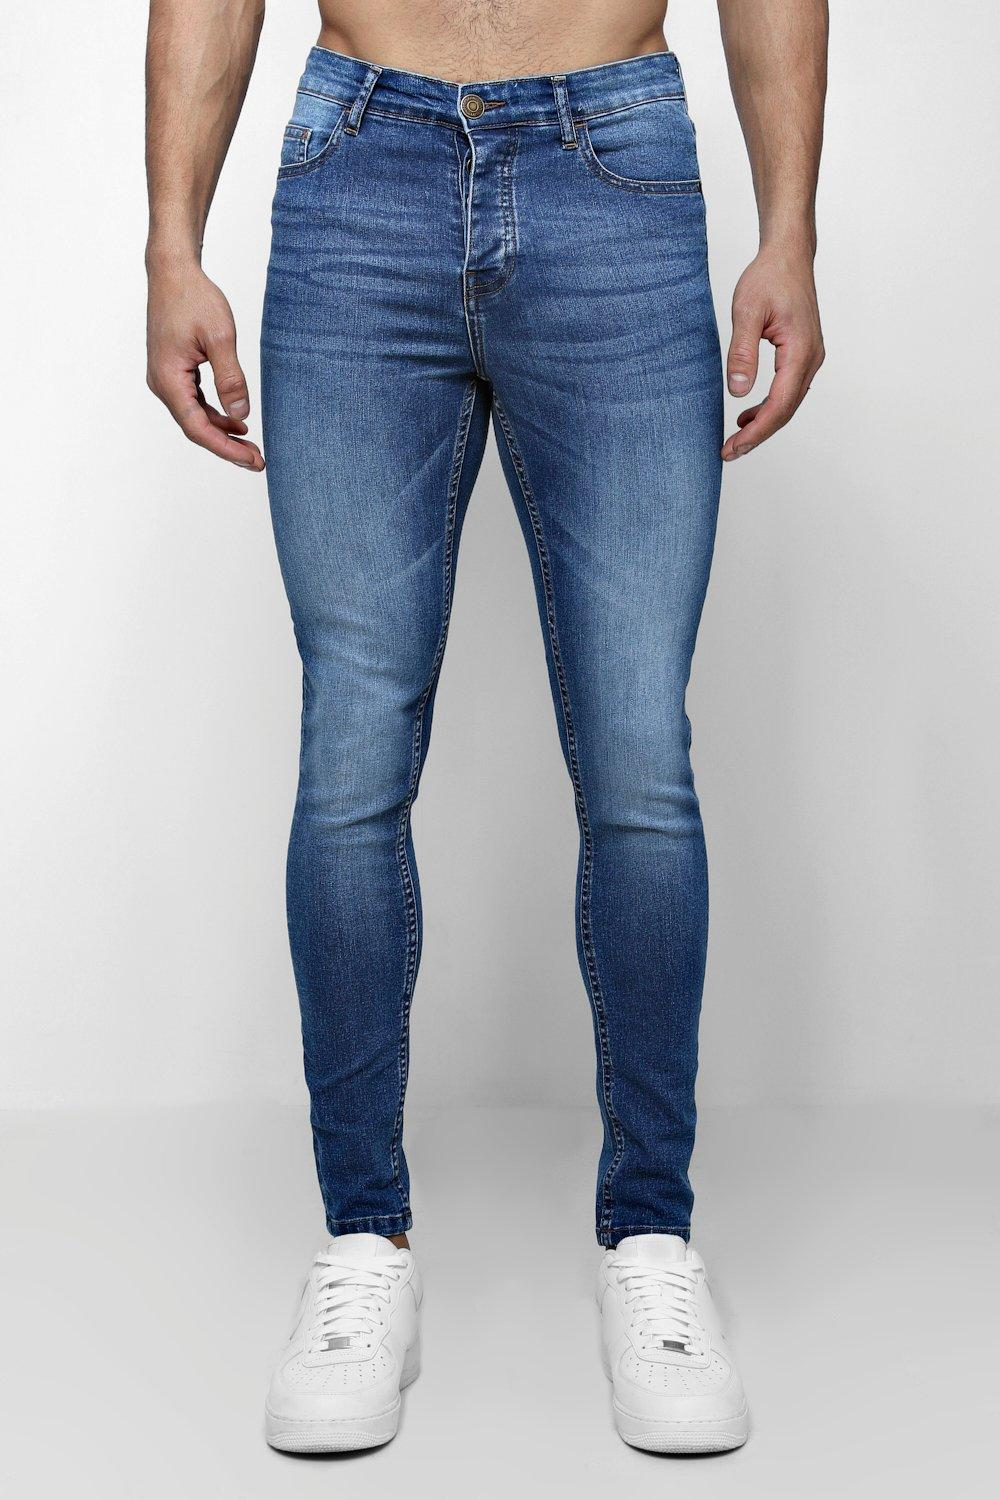 Spray On Skinny Jeans In Blue Wash